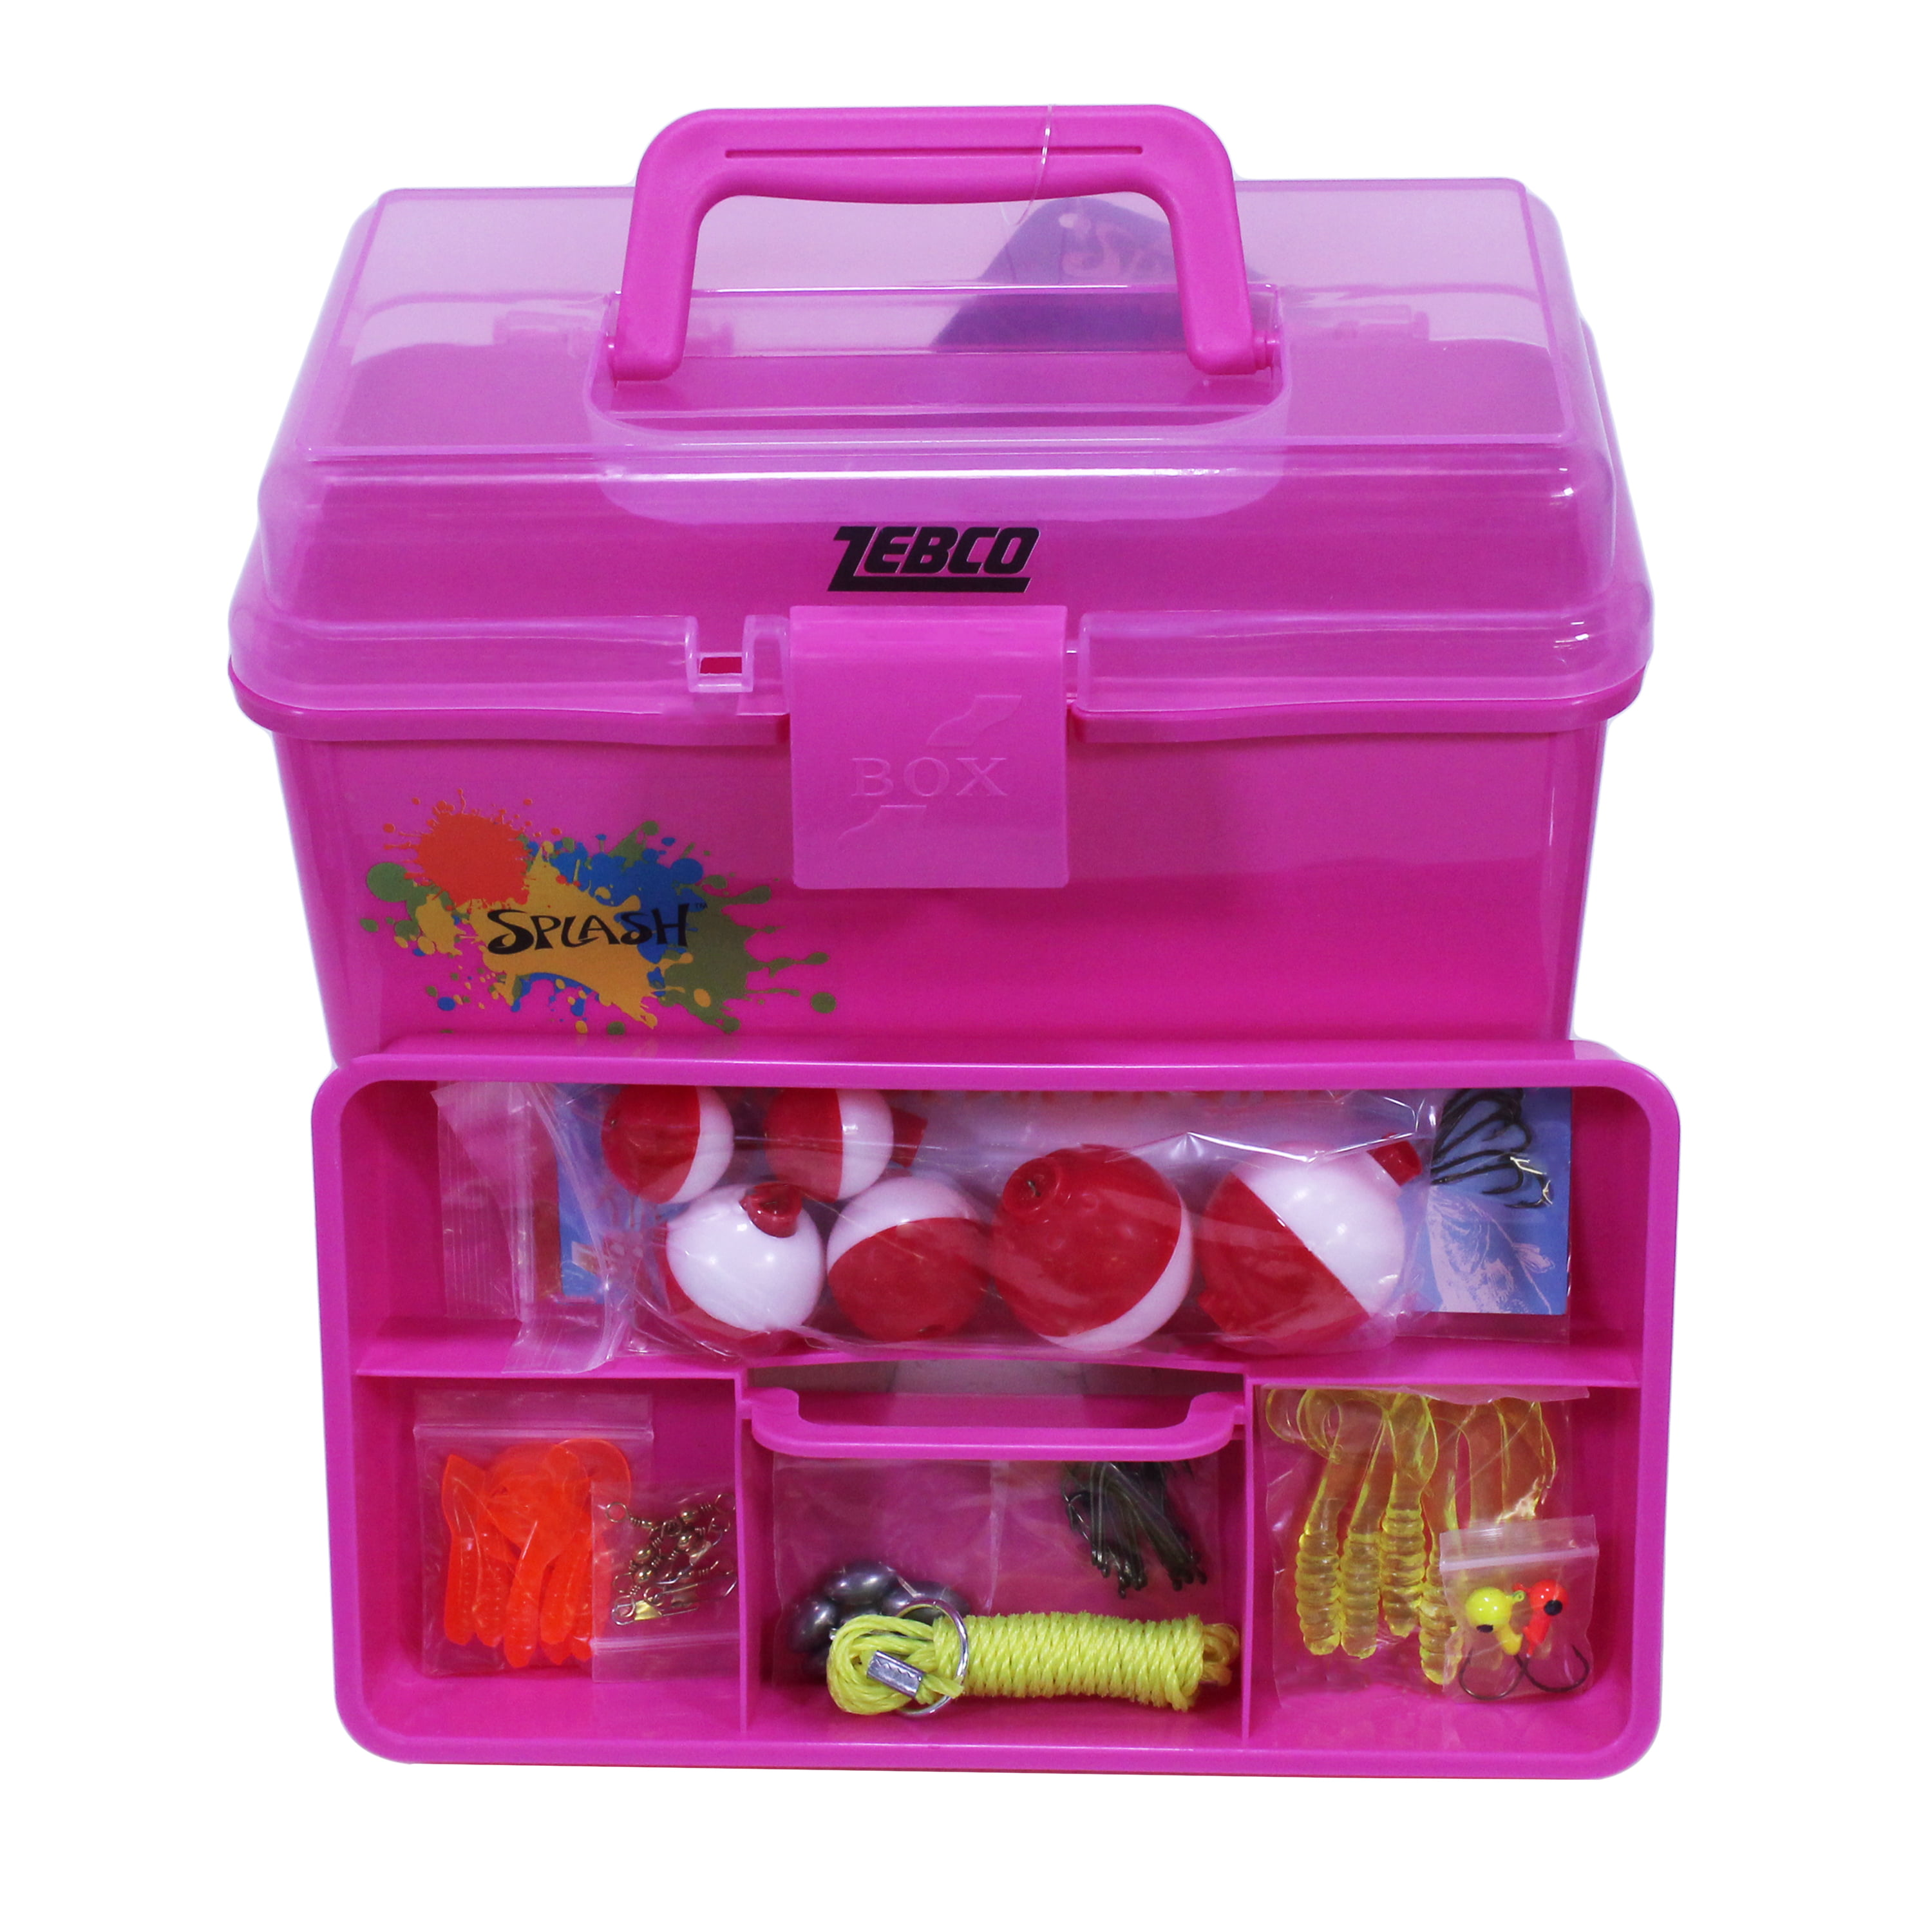 Zebco Kids Splash Tackle Box by Zebco Sales Company, LLC.